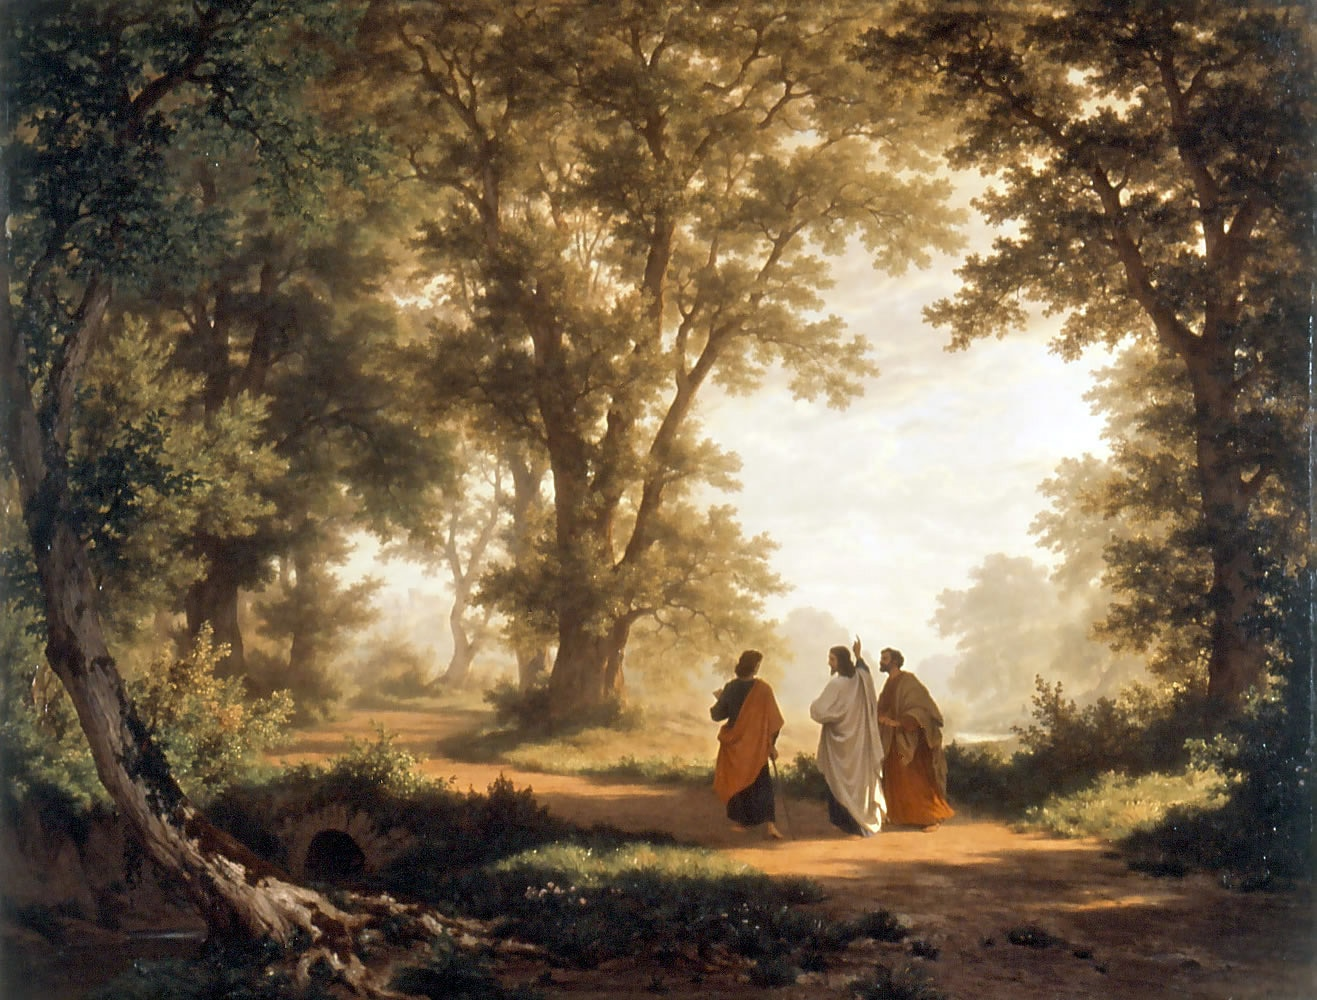 Robert Zünd (1827-1909): The Road to Emmaus